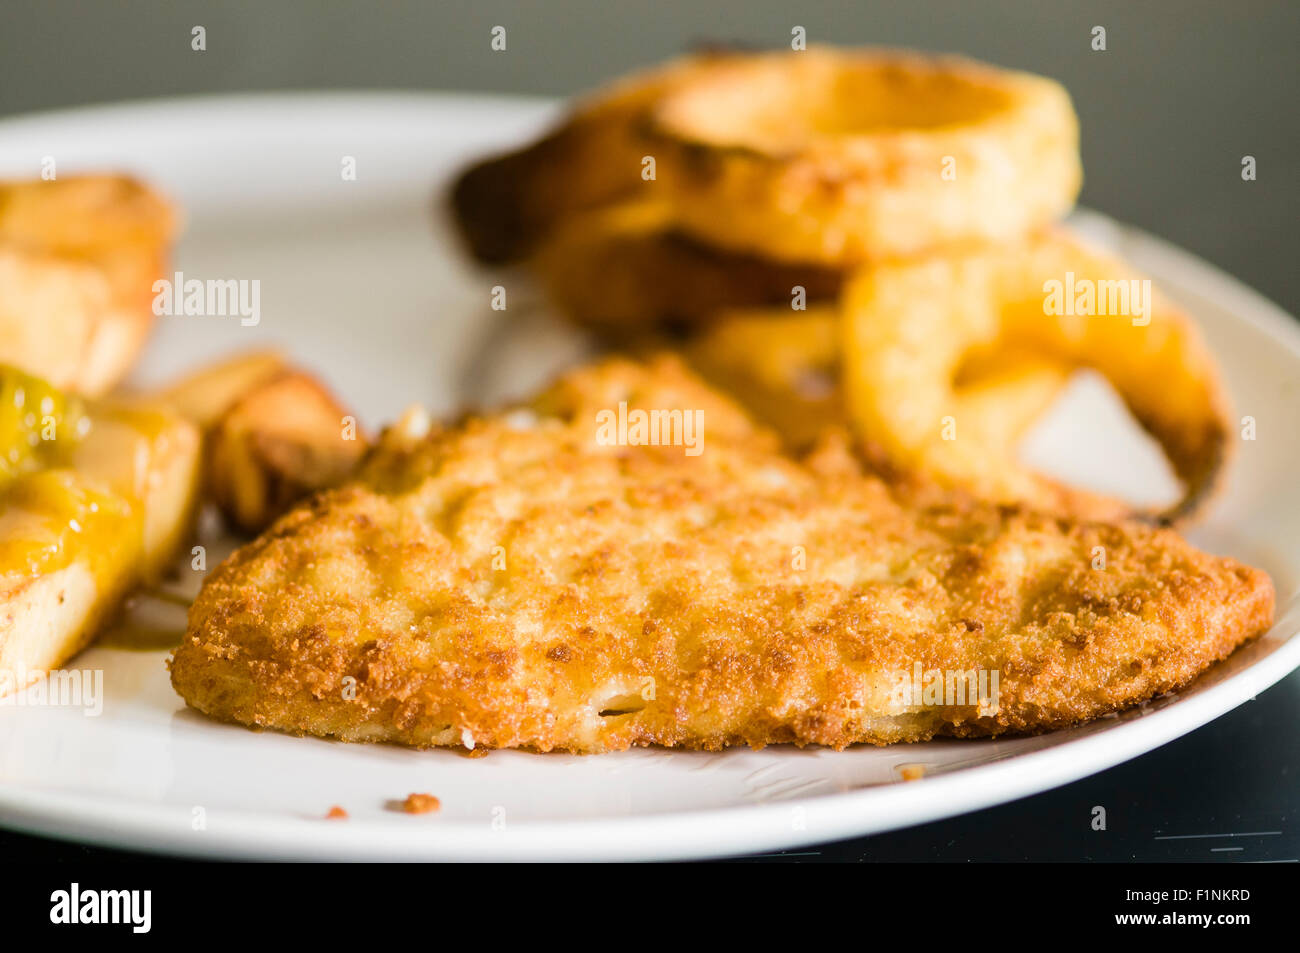 Marks and Spencer gluten free breaded cod fish and chips with gluten free onion rings - Stock Image